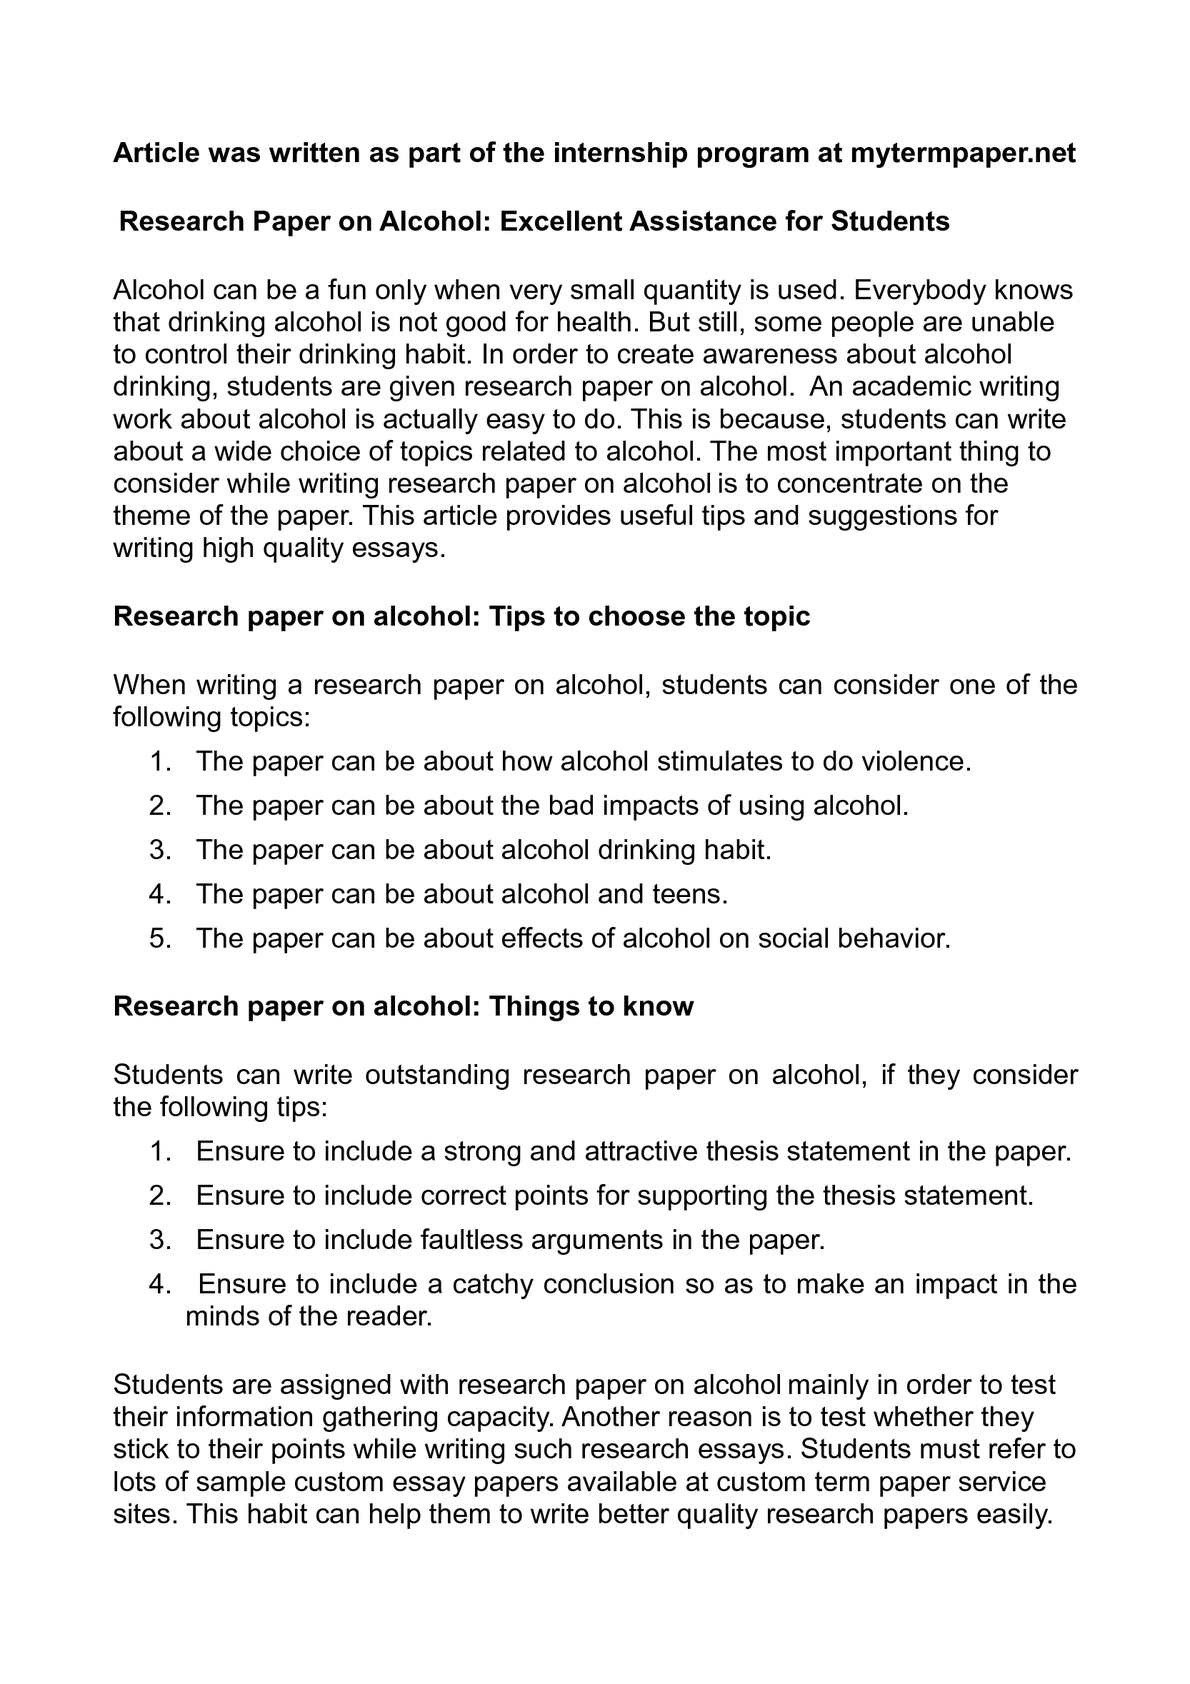 001 Research Paper On Alcohol Awesome Substance Abuse Treatment Alcoholic Beverages Full